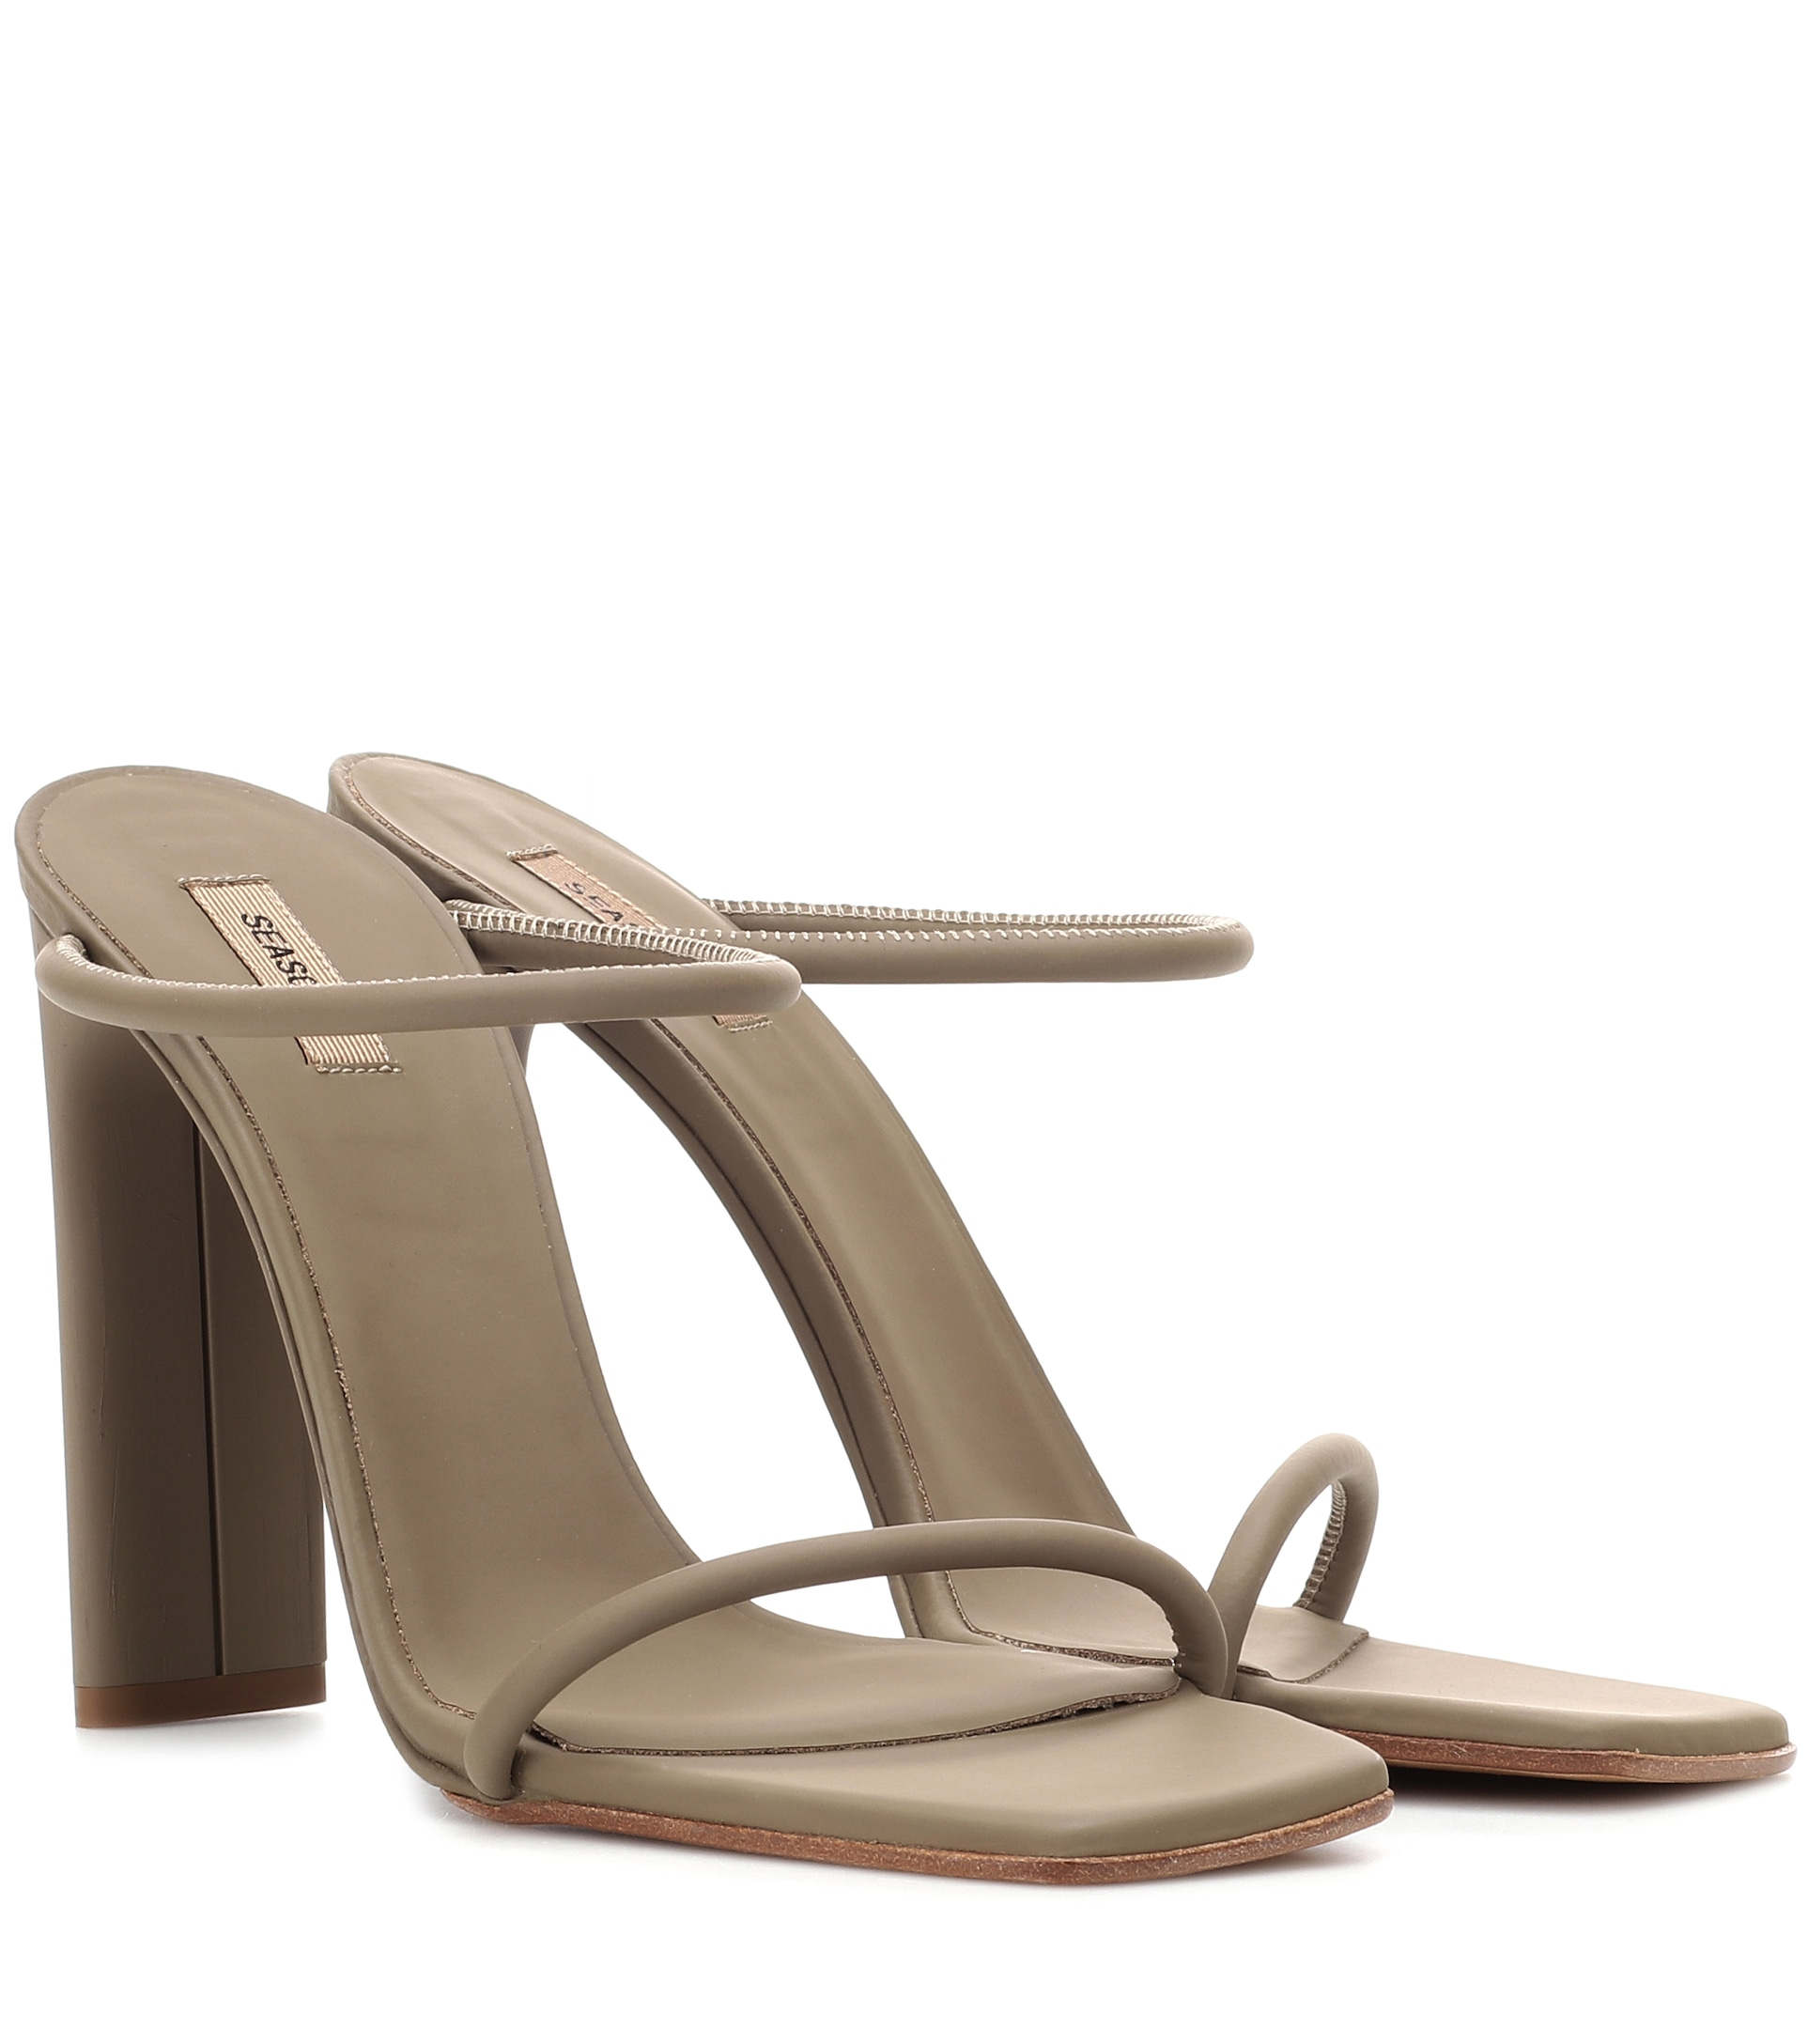 Rubberised leather sandals (SEASON 6) by Yeezy, available on mytheresa.com for $524 Kendall Jenner Shoes Exact Product